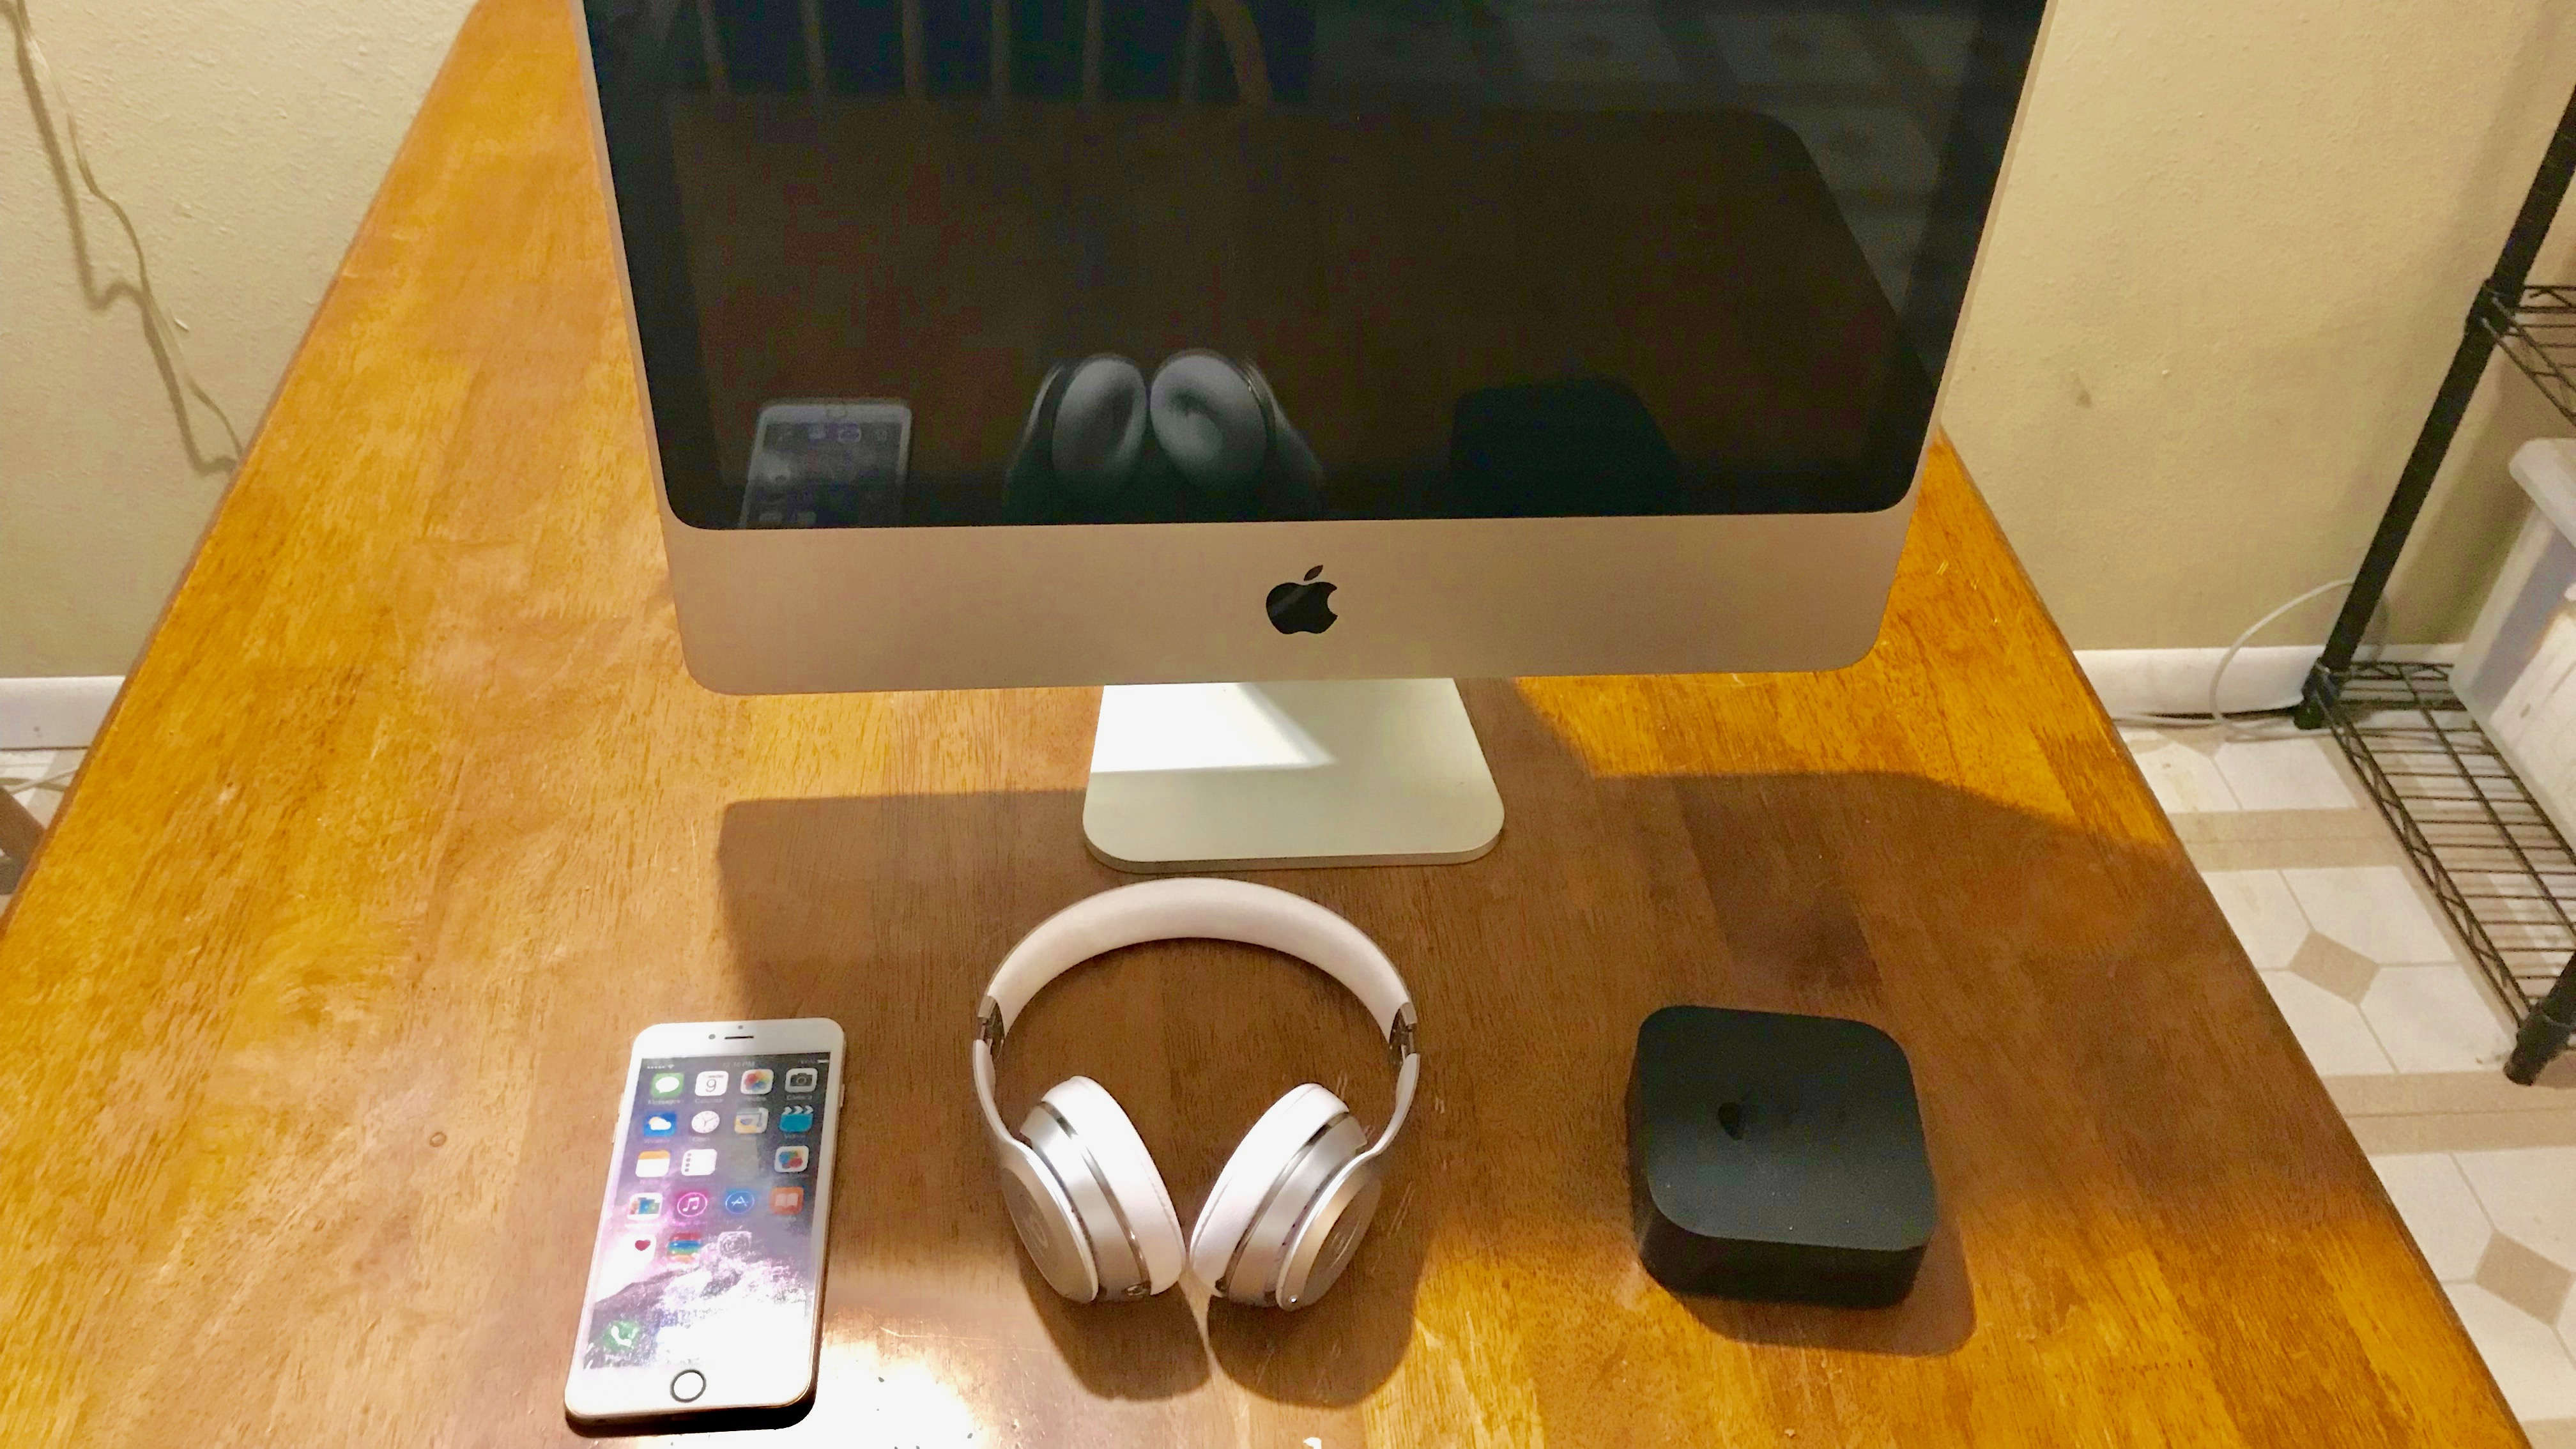 beats-imac-iphone-appletv